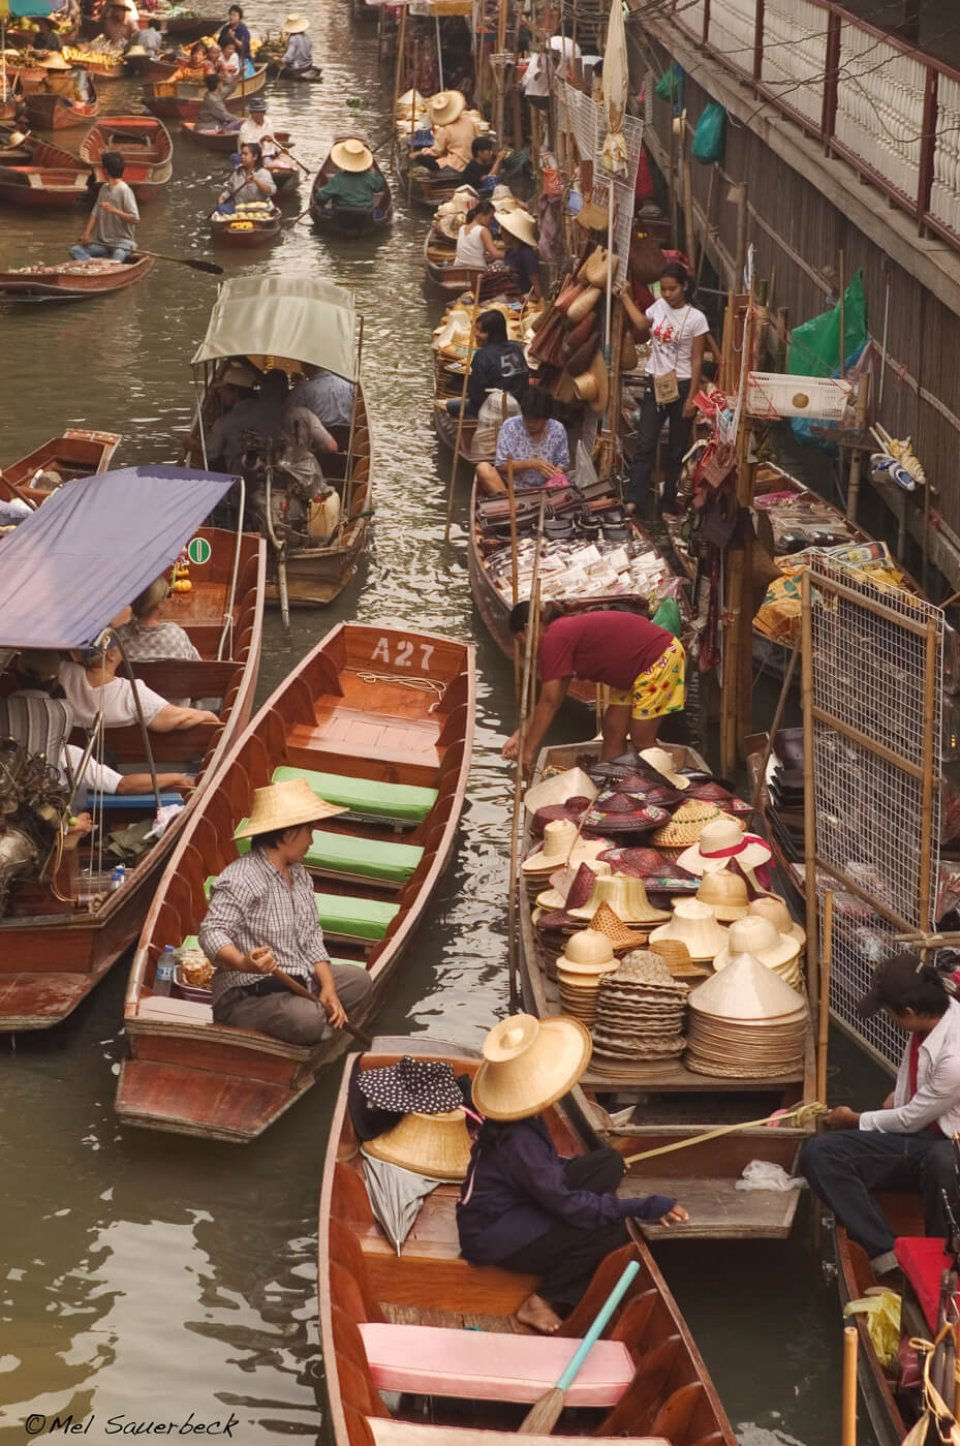 Merchants in boats, Thailand